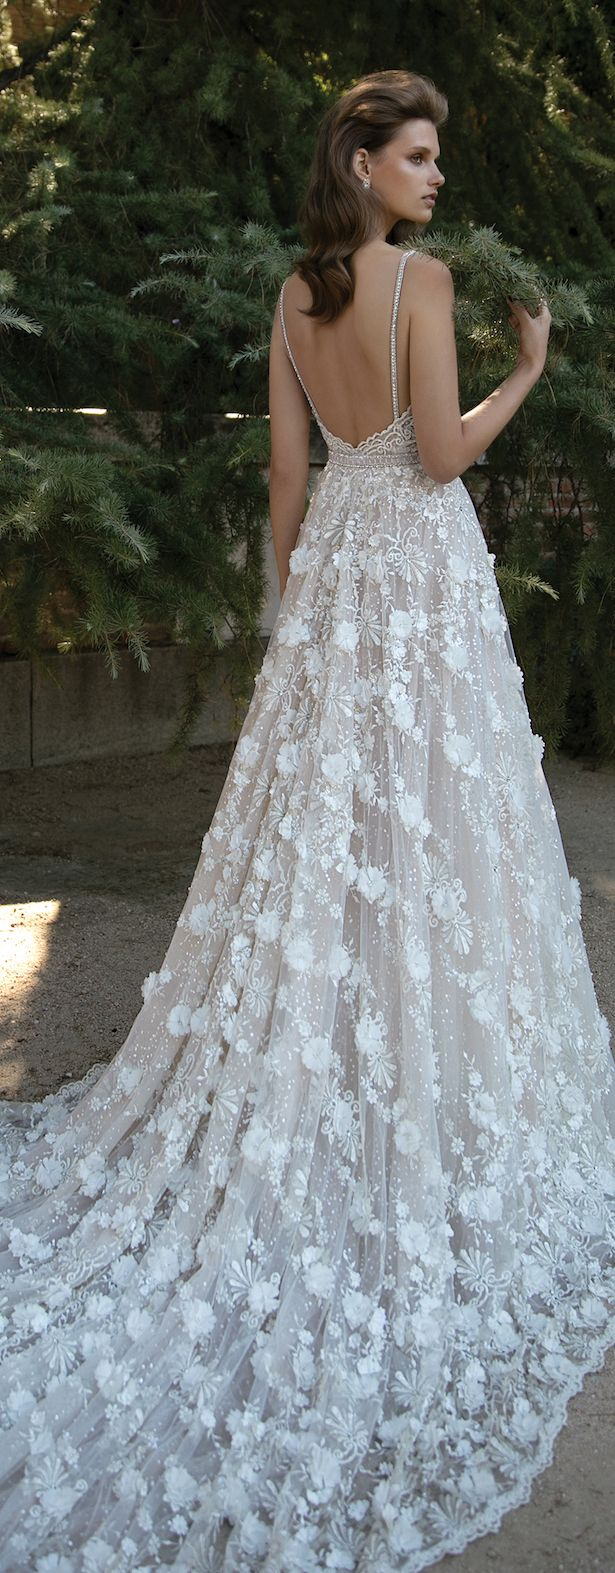 2356 best The dress images on Pinterest | Groom attire, Wedding ...